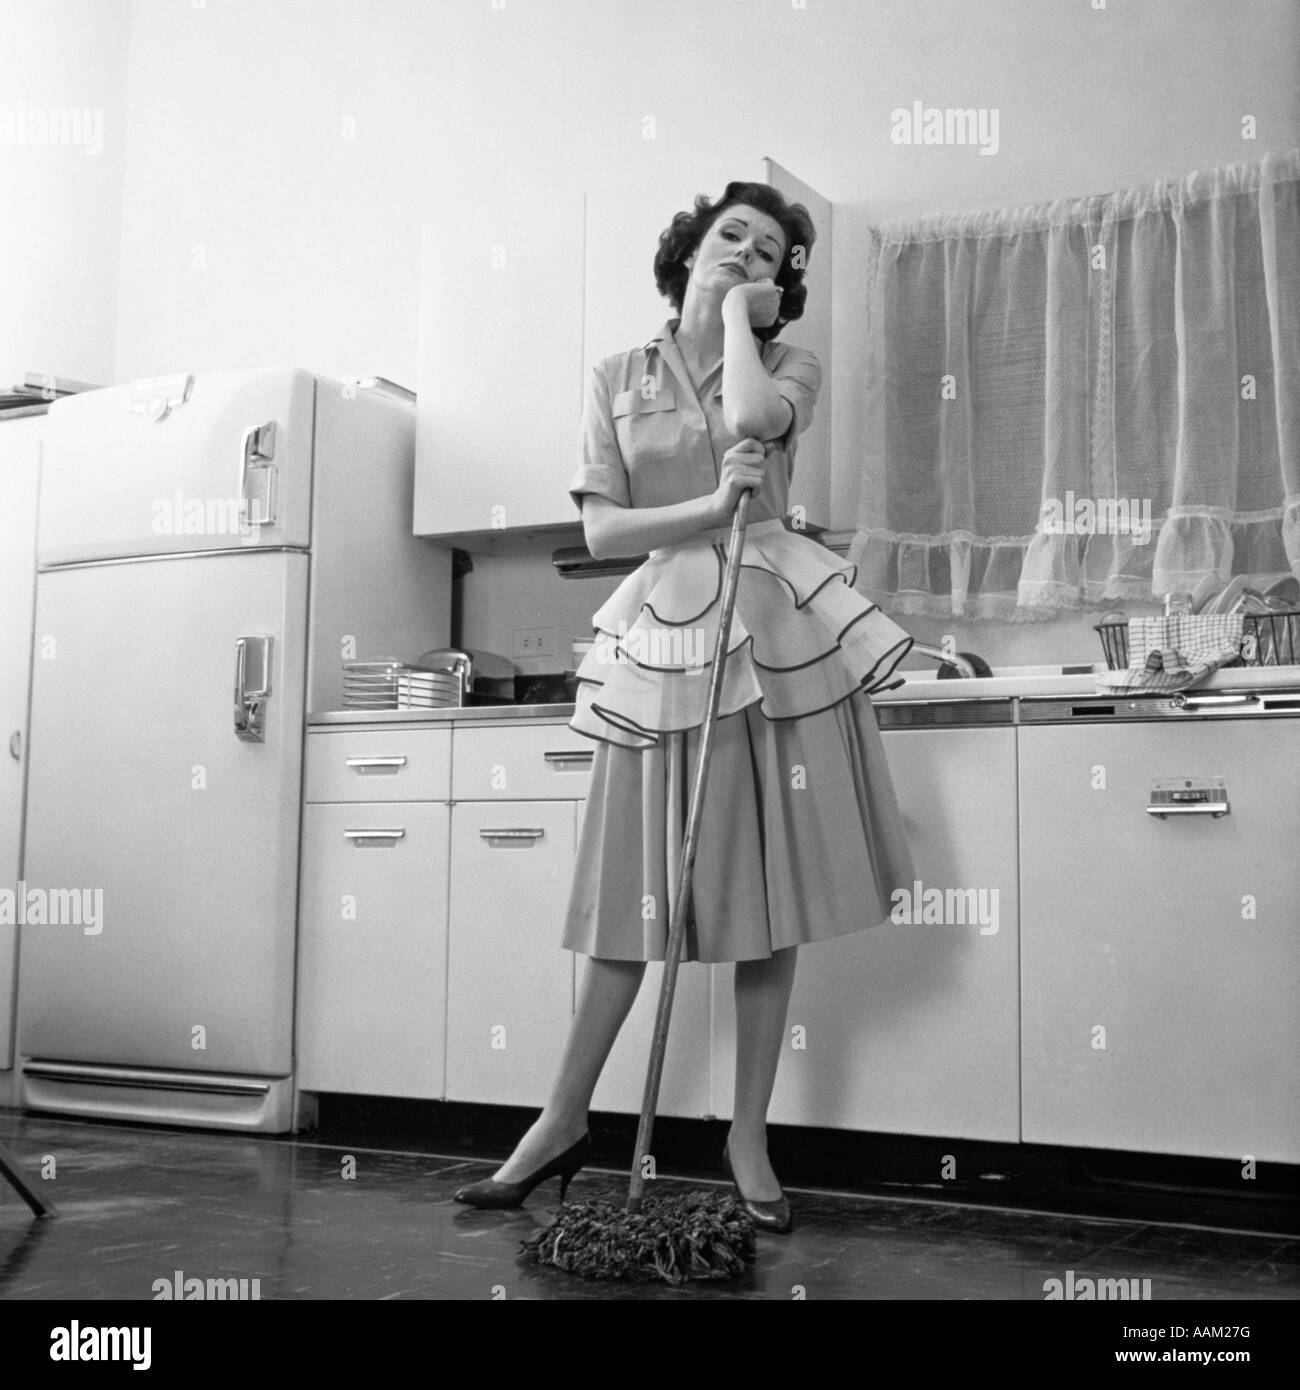 Kitchen Floor Mops 1950s Bored Woman Housewife Wearing Apron Leaning On Mop On